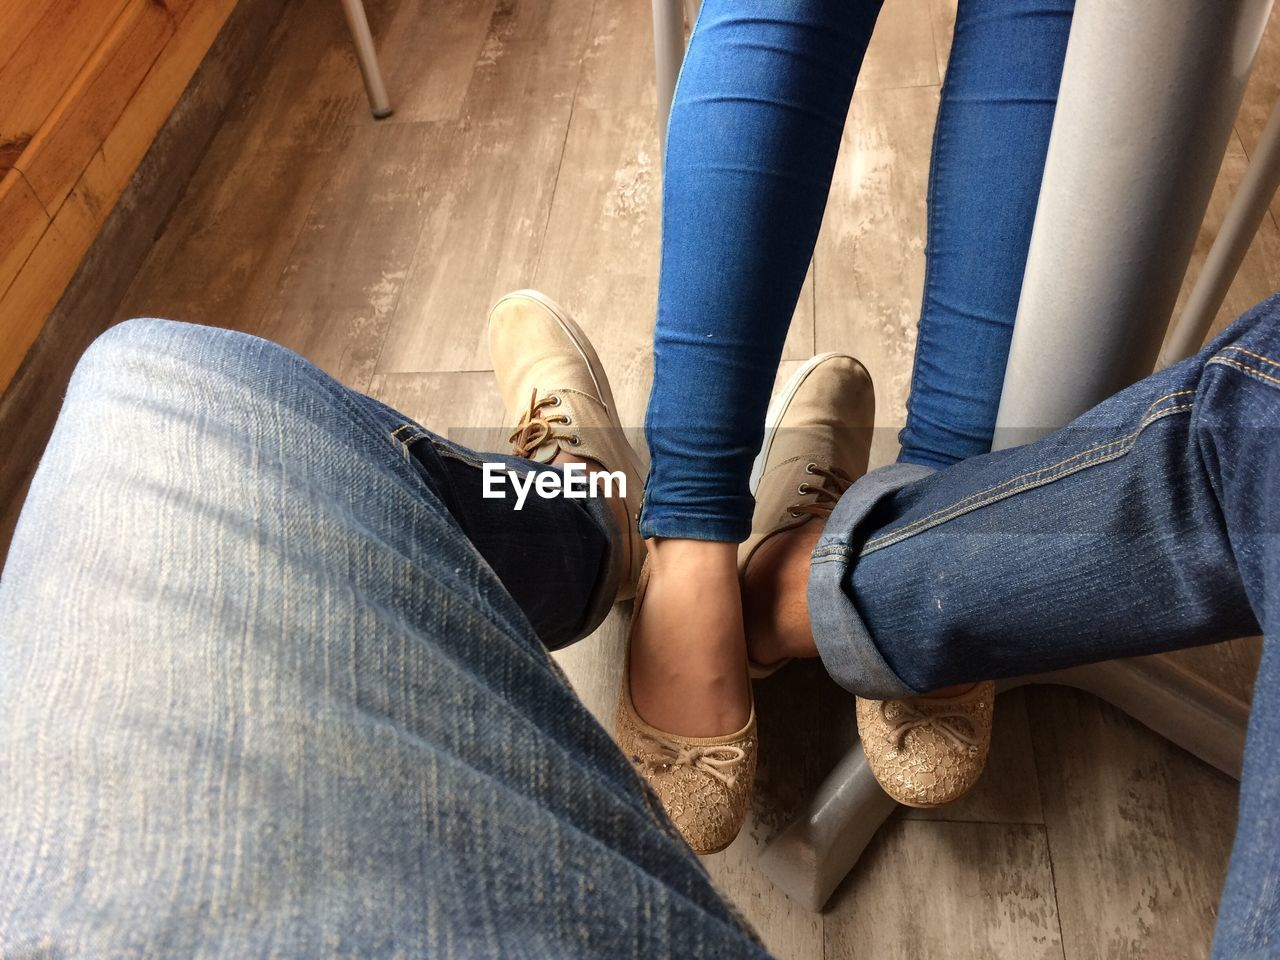 jeans, low section, human leg, shoe, human body part, casual clothing, real people, human foot, lifestyles, leisure activity, day, togetherness, sitting, indoors, men, women, close-up, young women, friendship, young adult, human hand, adult, people, adults only